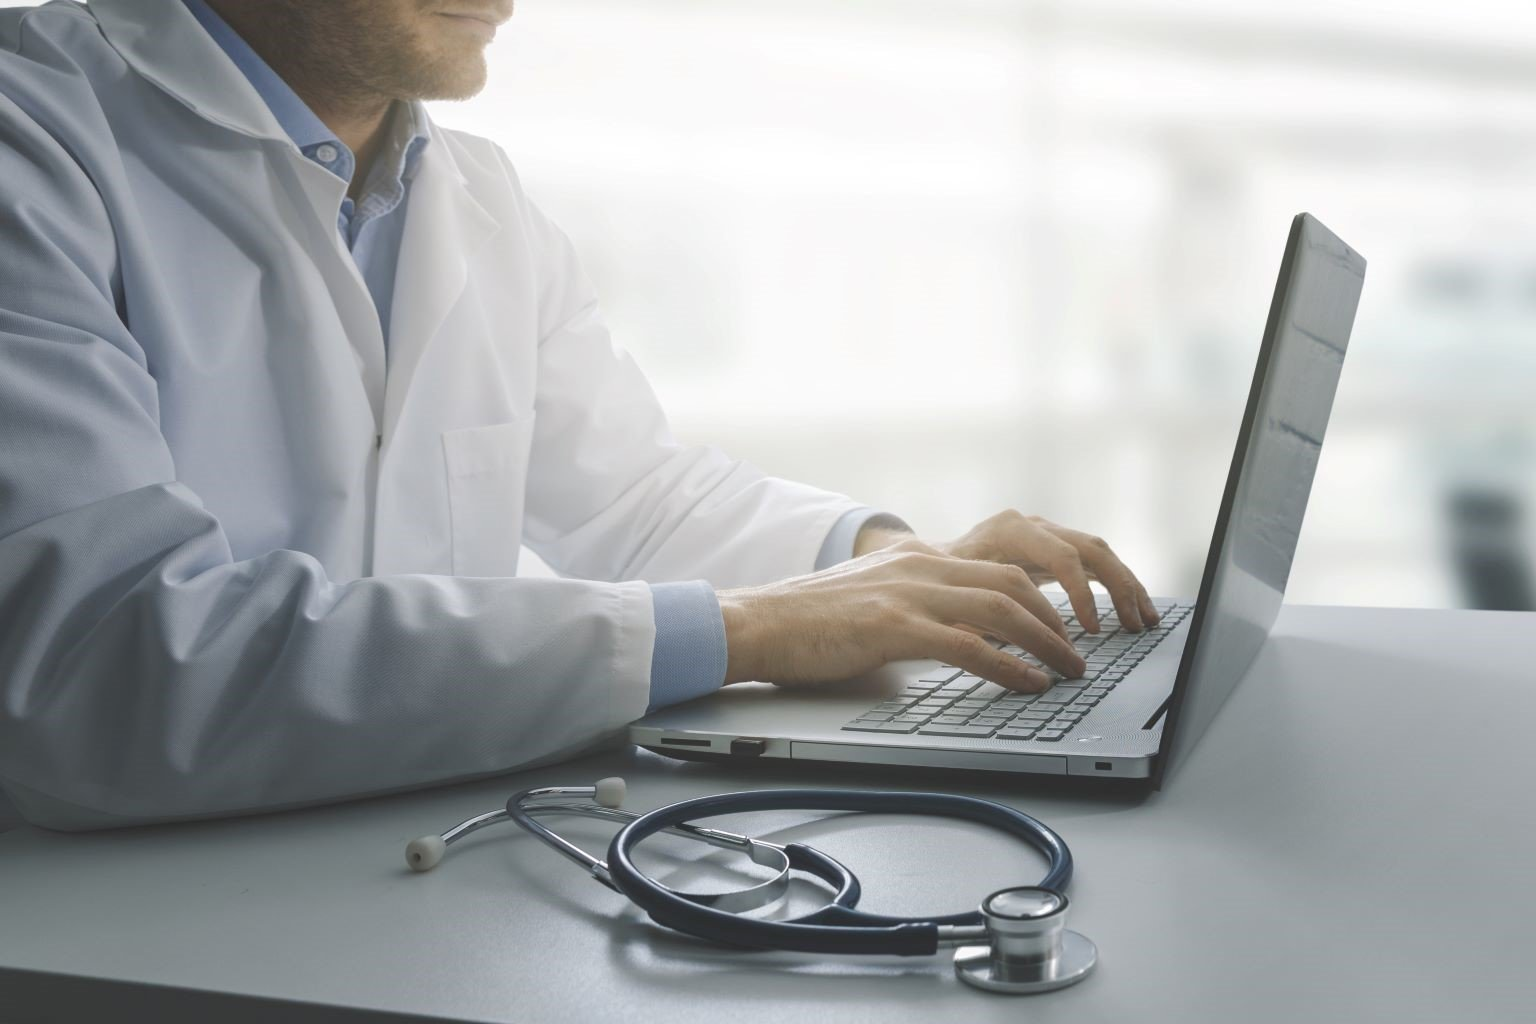 Male doctor typing on laptop at desk.